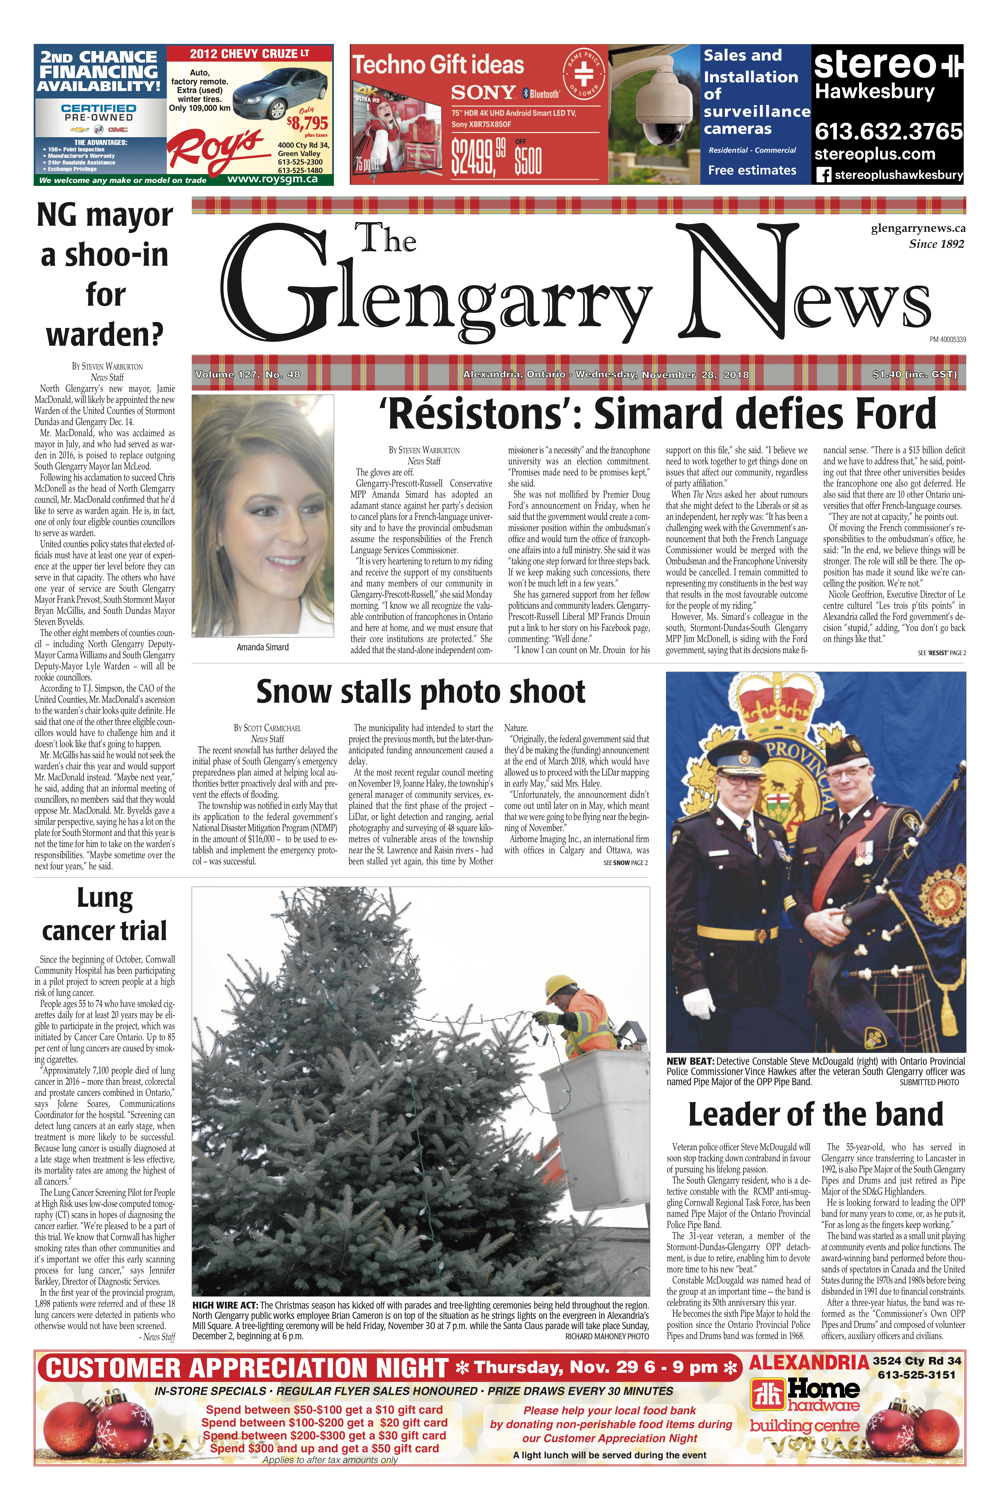 The front page of The News for November 28, 2018 | The Glengarry News